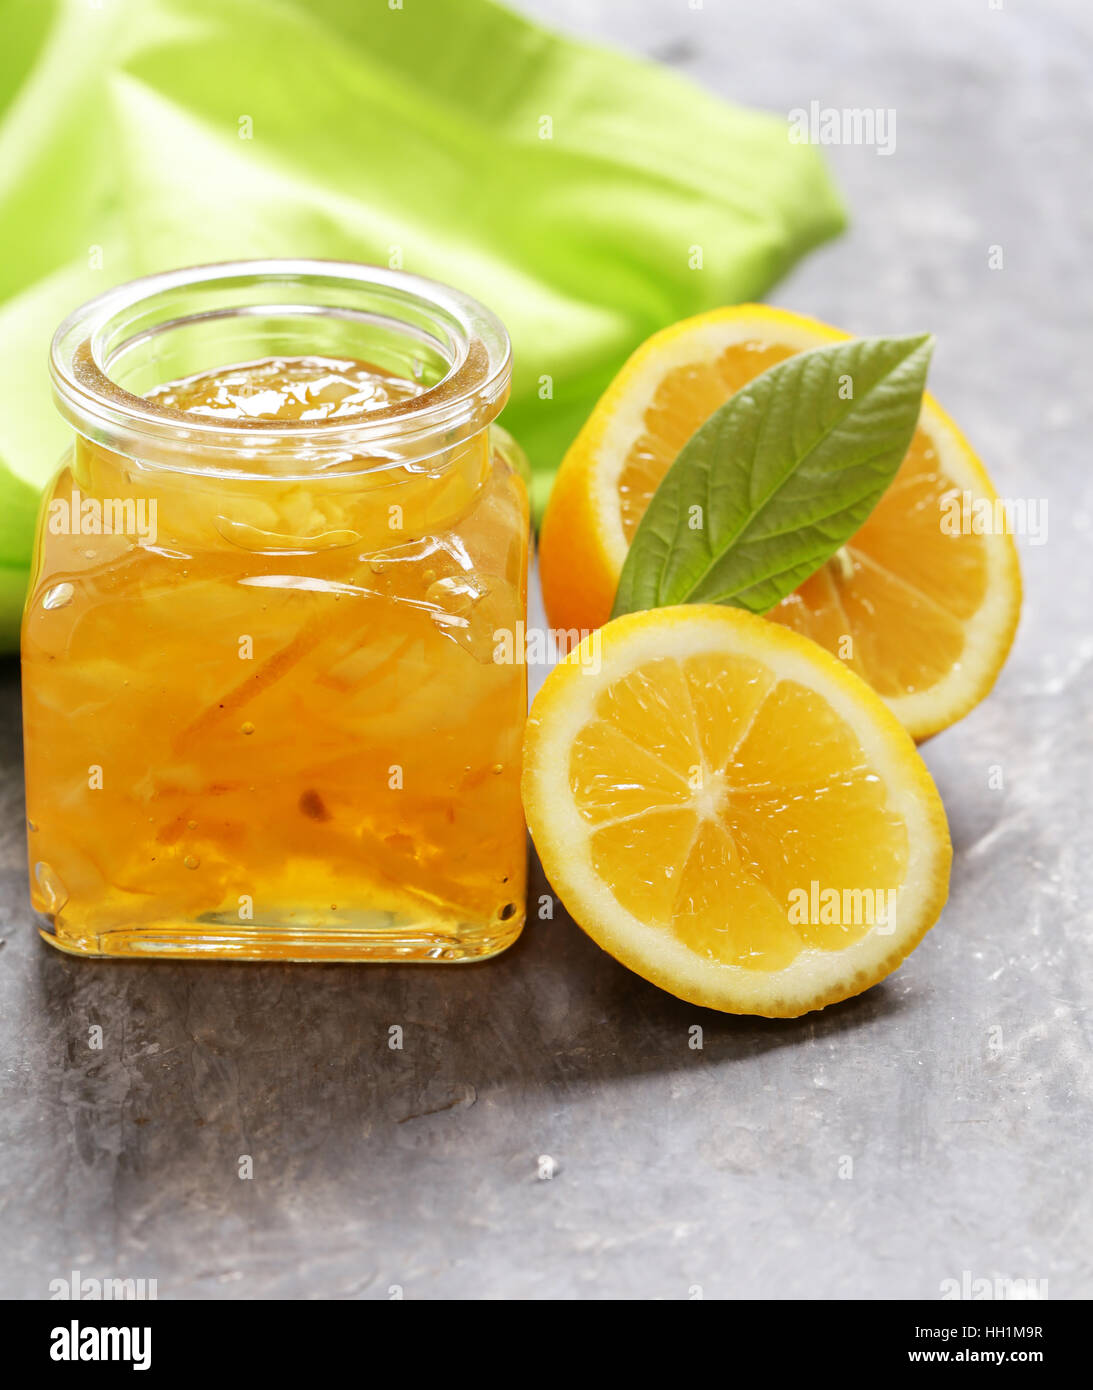 natural lemon jam with zest, homemade canned food - Stock Image